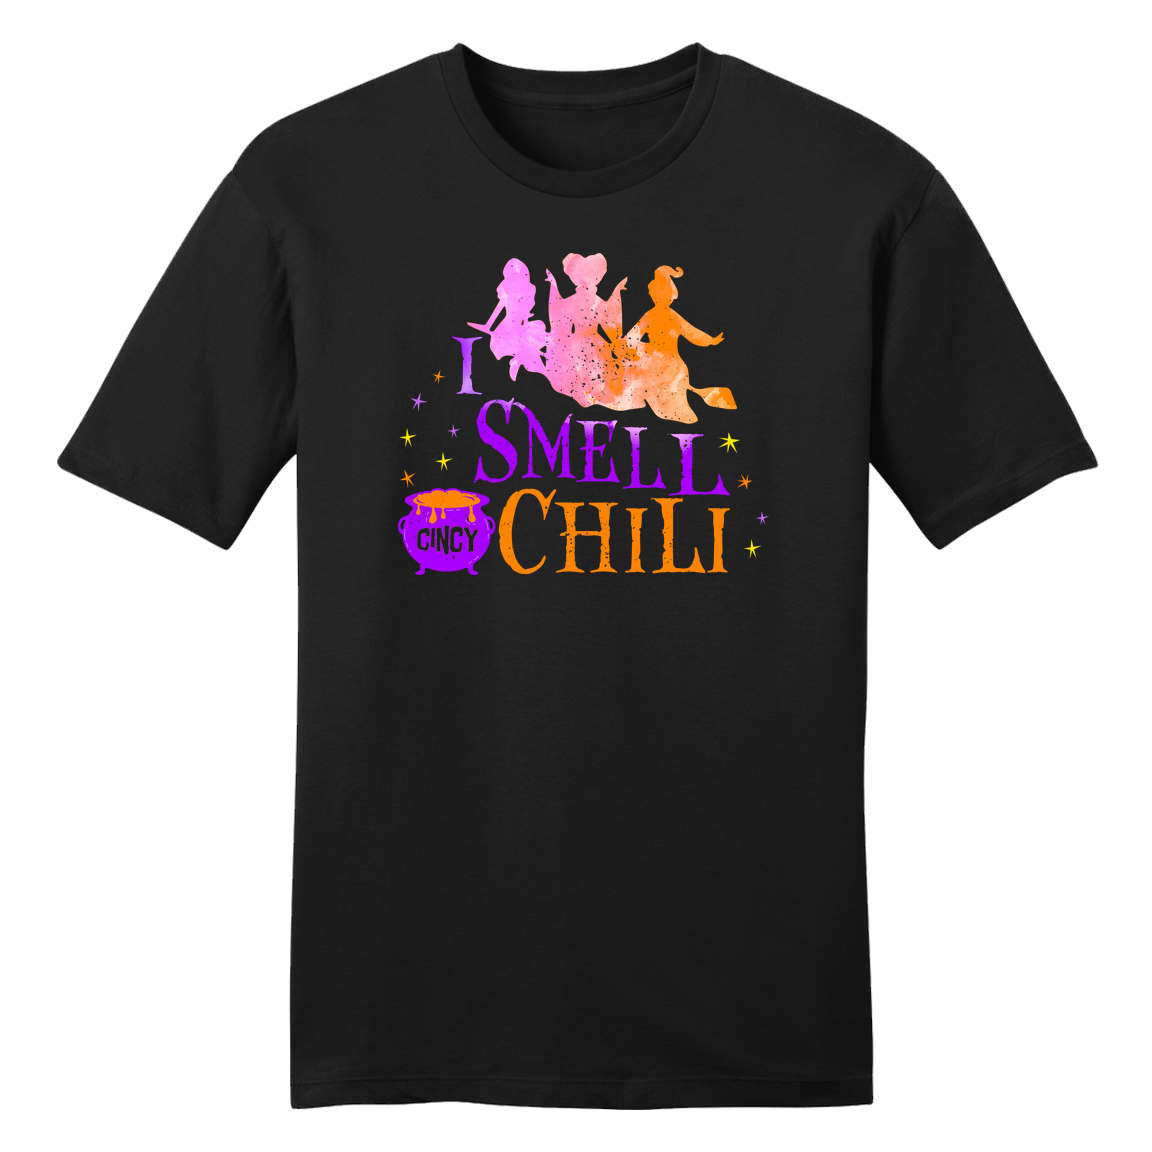 I Smell Chili - Cincy Shirts